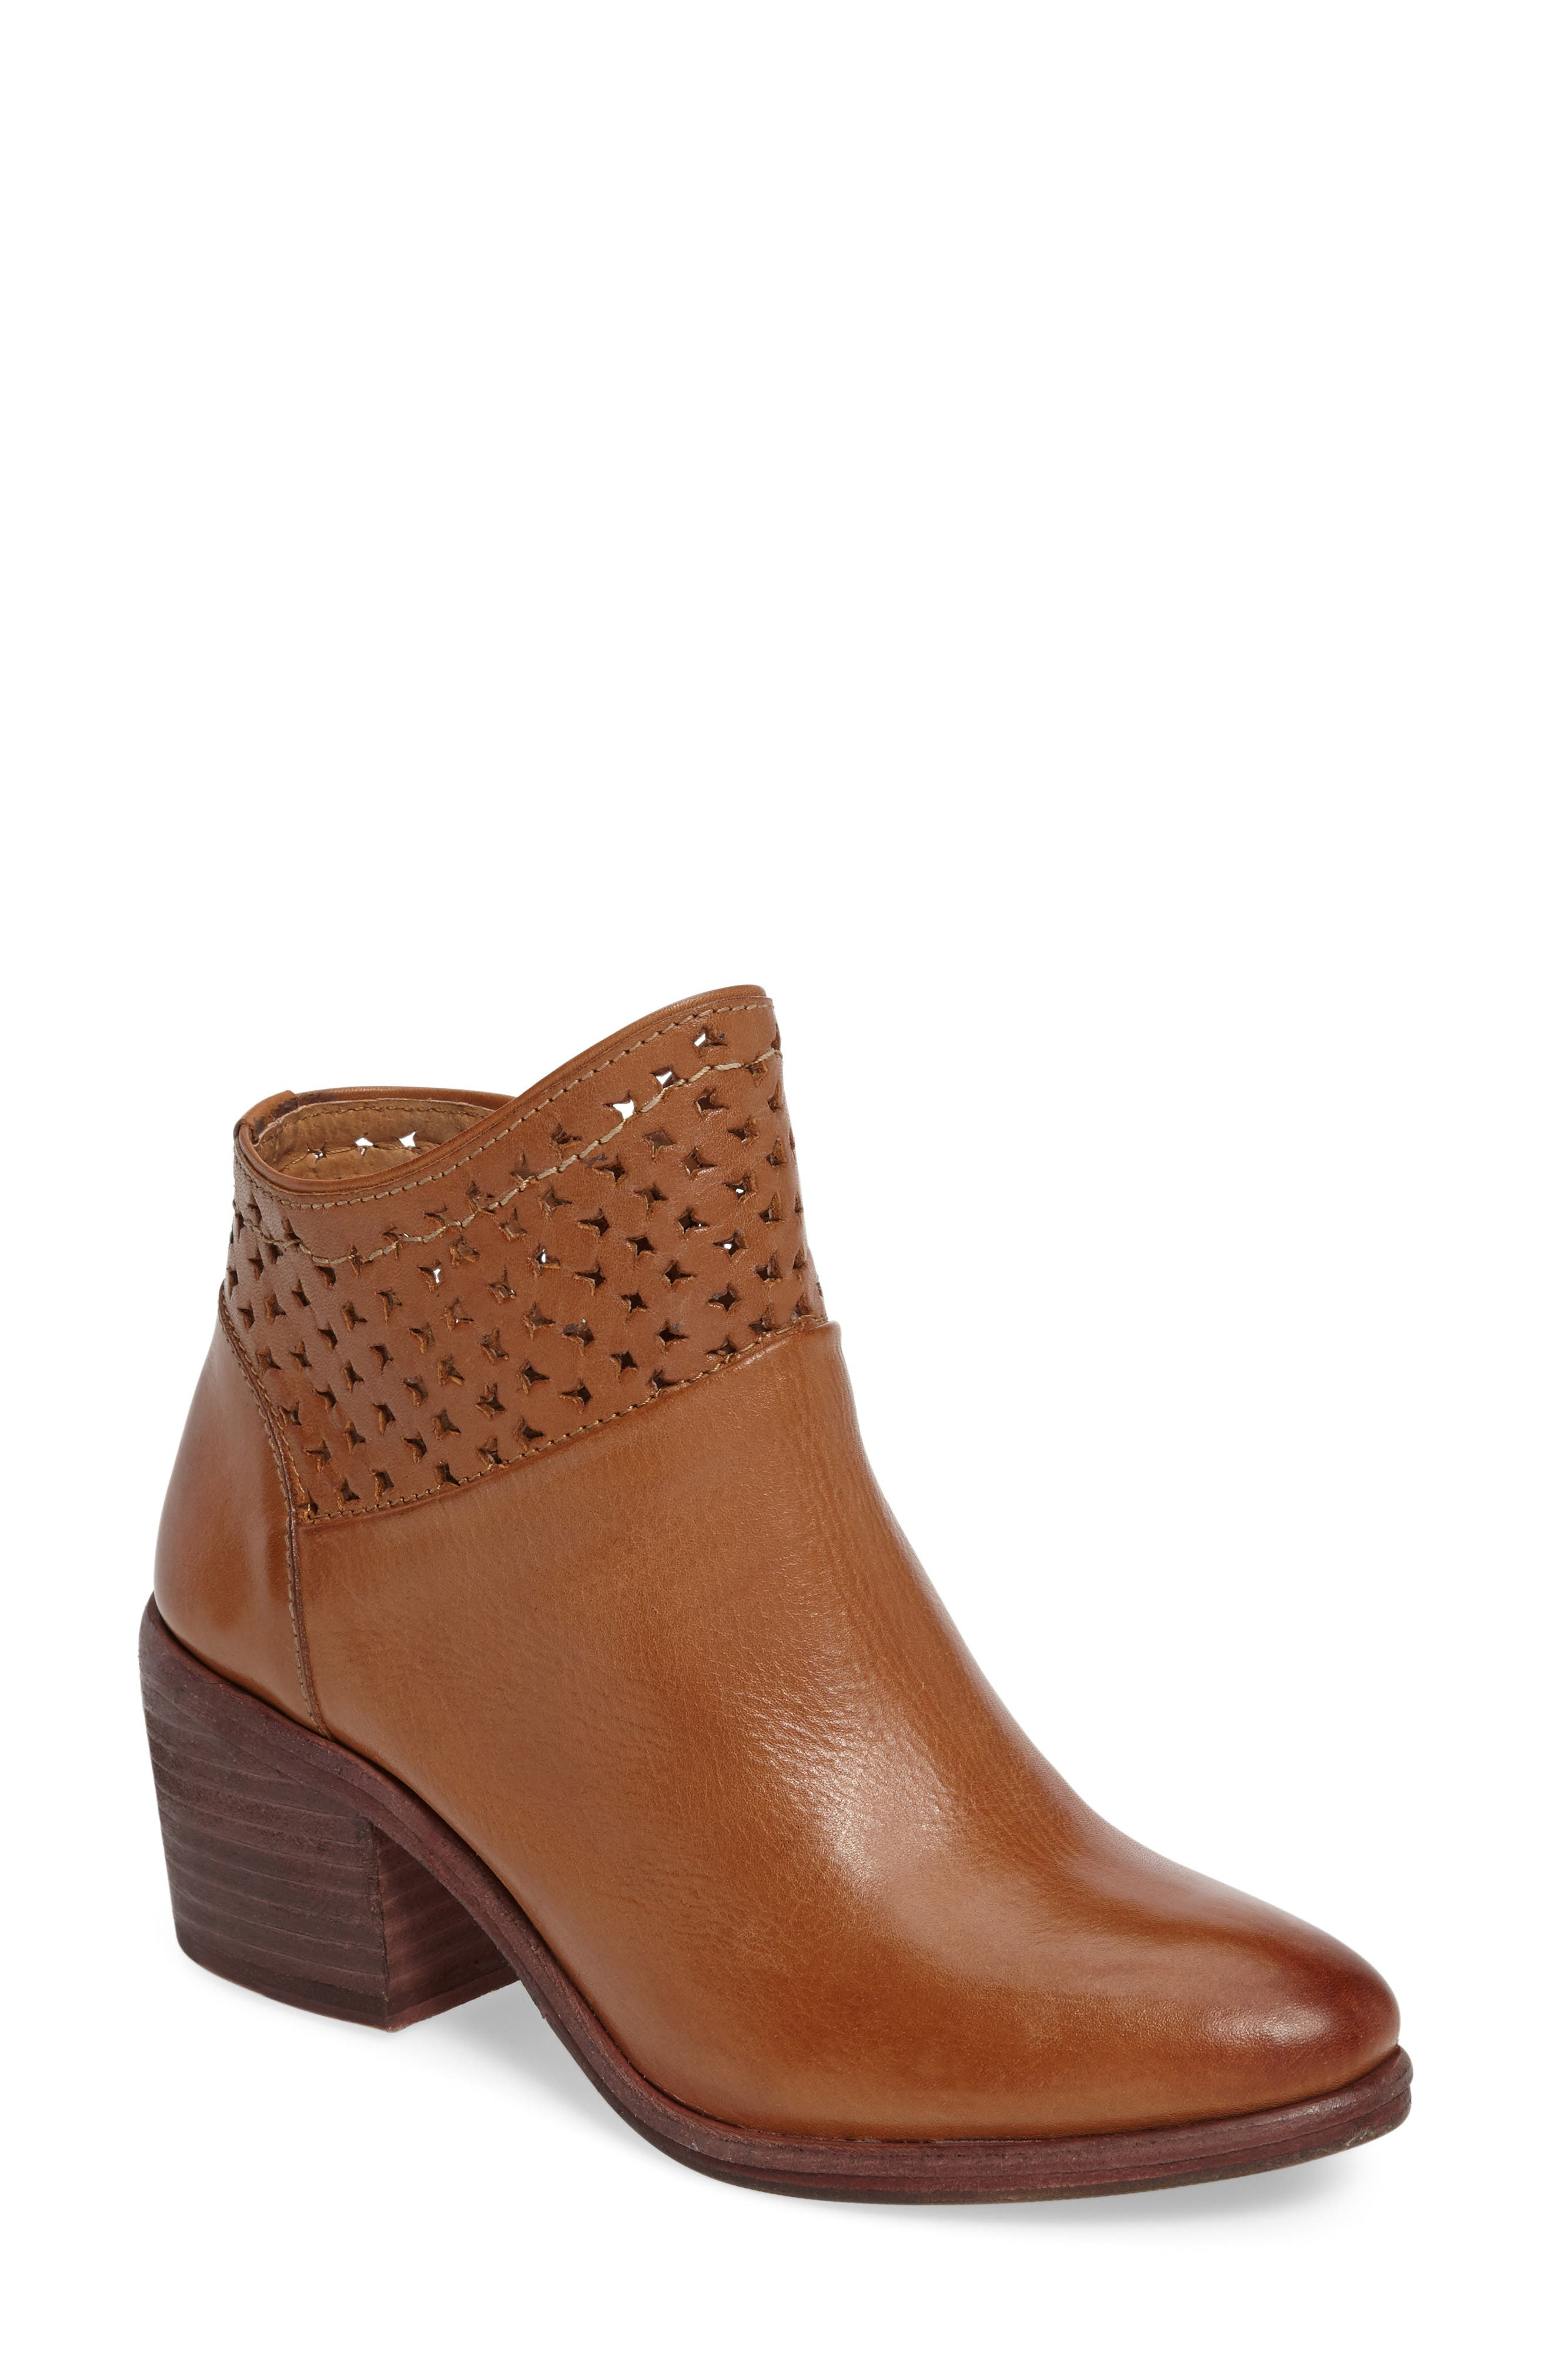 Kelsi Dagger Brooklyn Glenwood Perforated Bootie (Women)